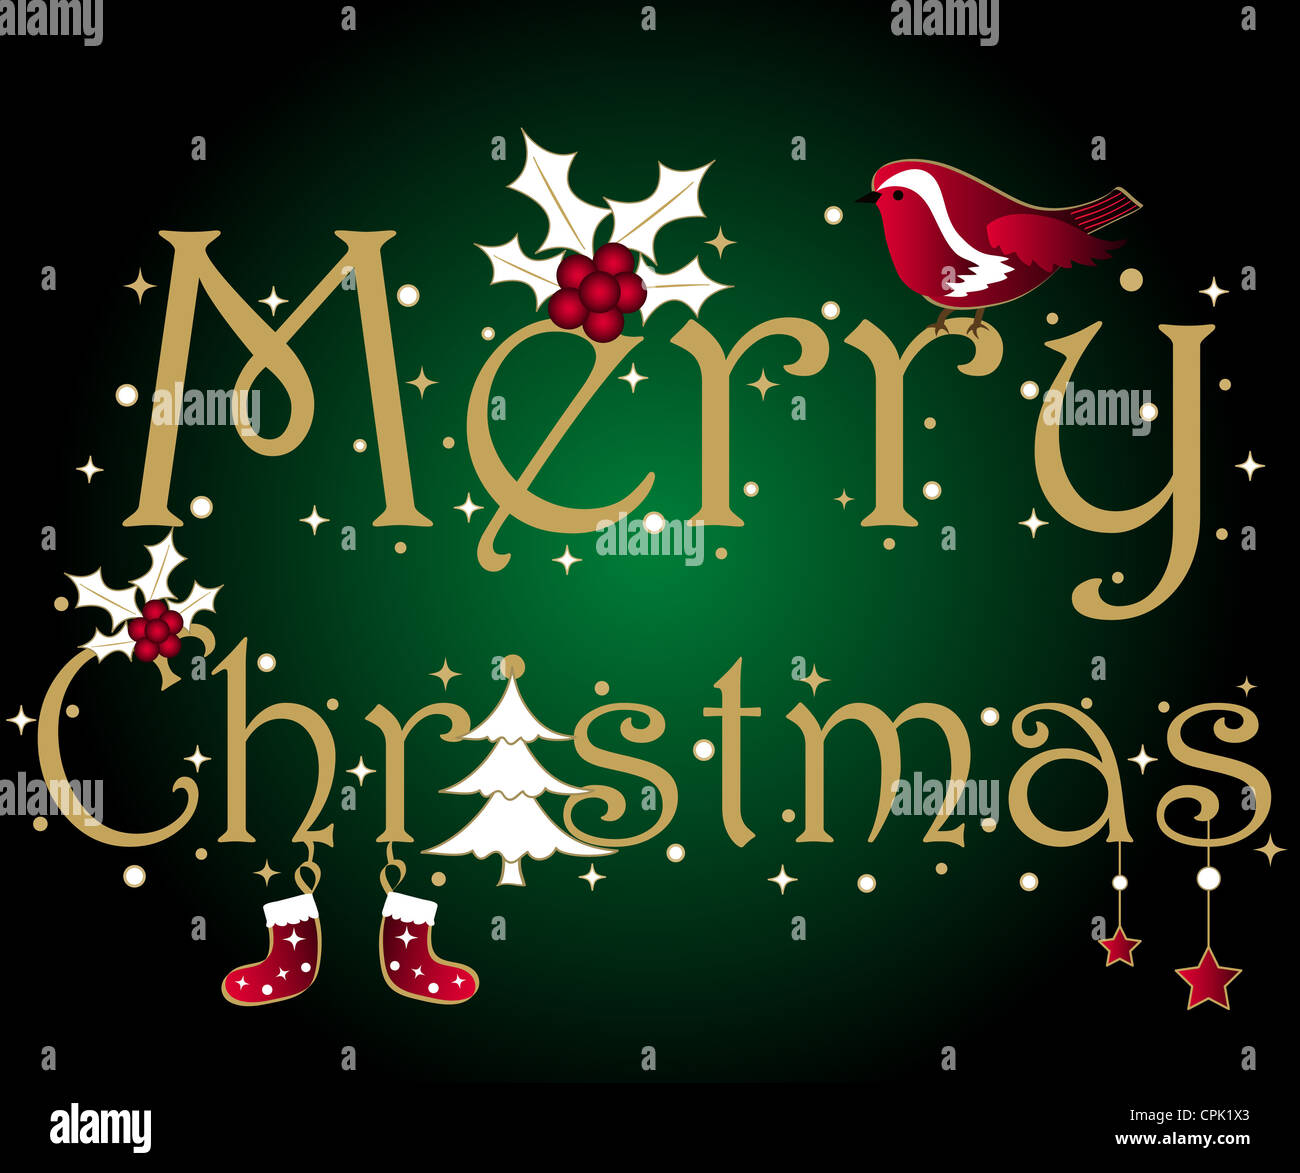 Merry Christmas wishes with tree, holly, stars and robin Stock Photo